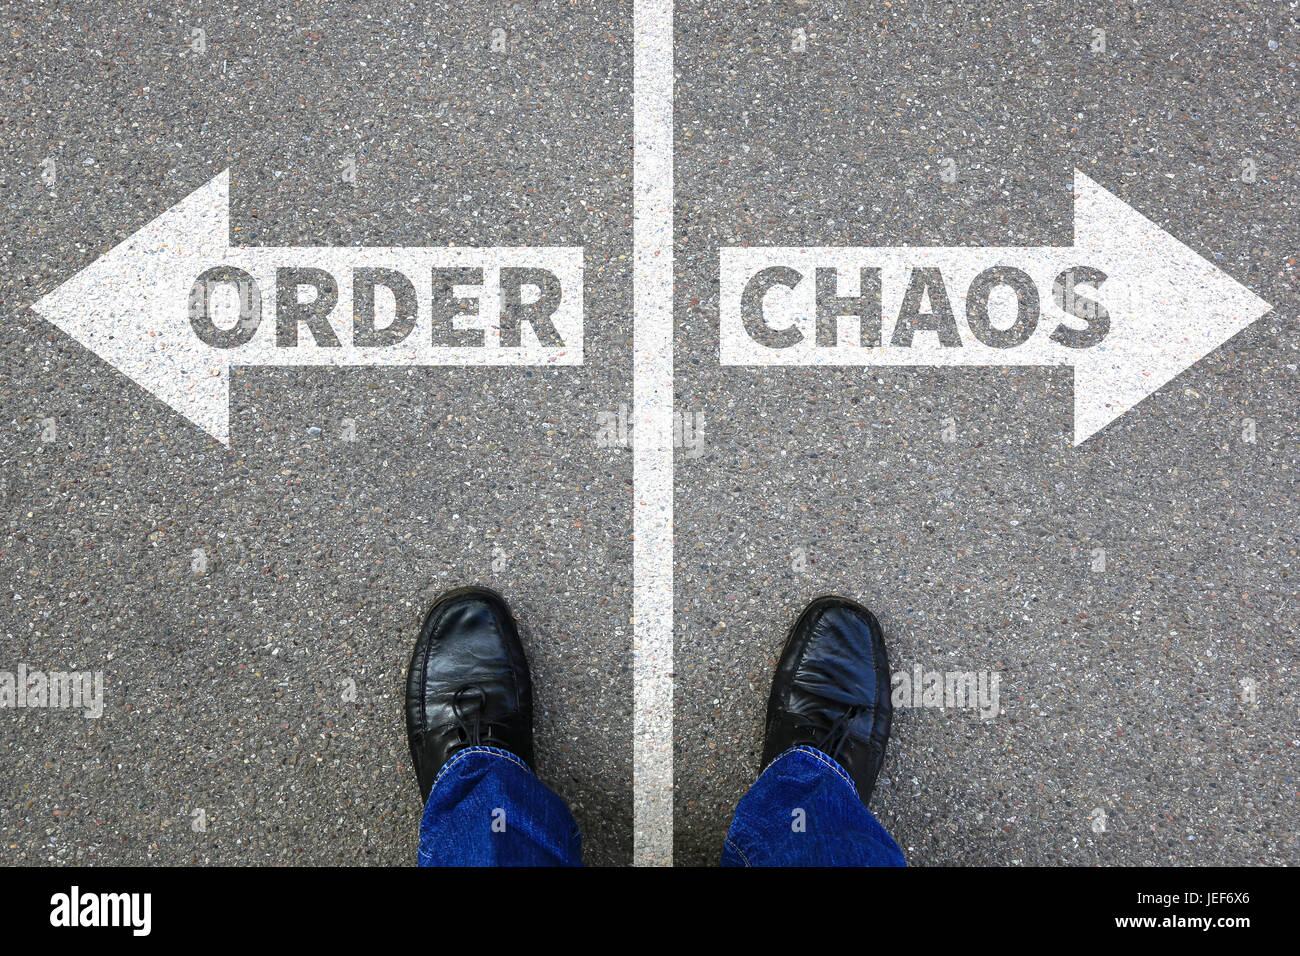 Chaos and order organisation office businessman business concept success successful - Stock Image